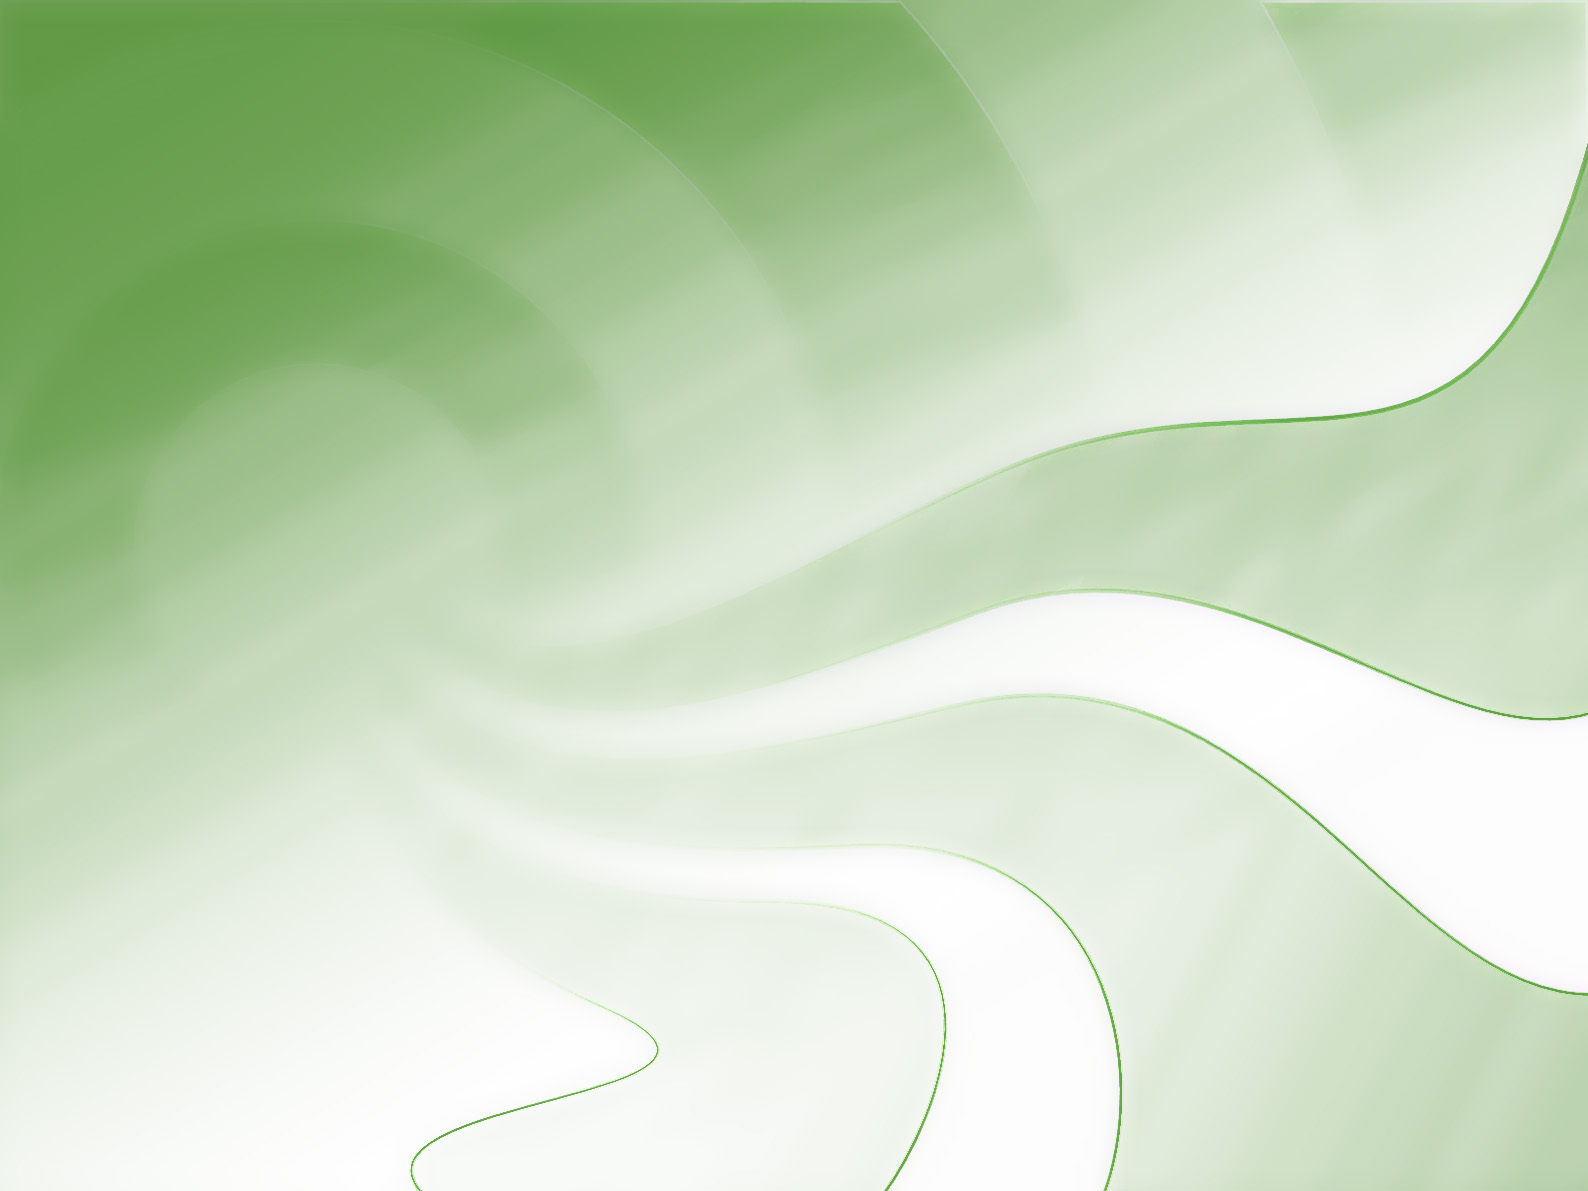 Green Swirl PPT Backgrounds